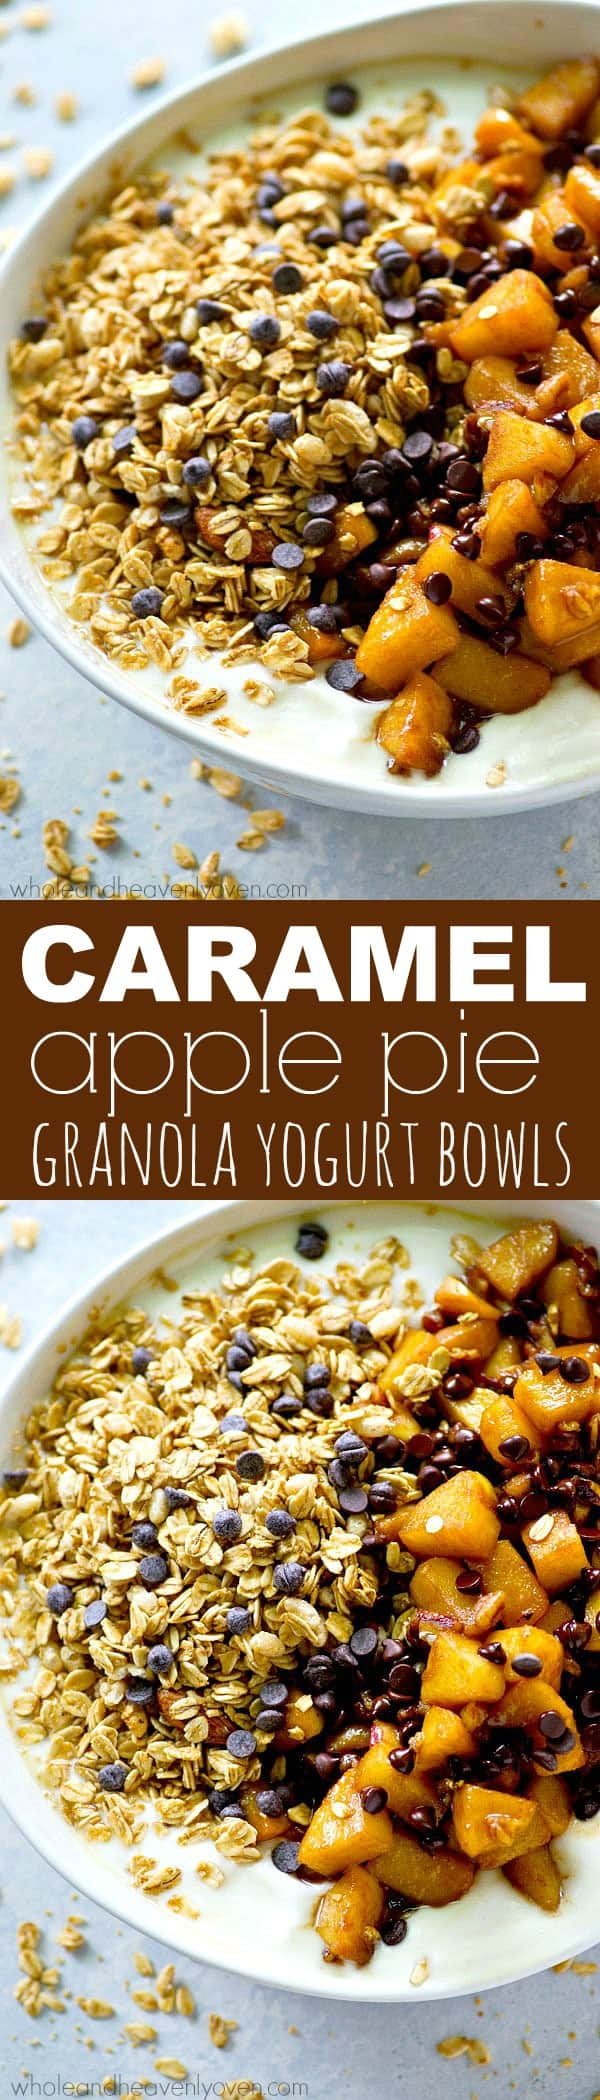 These loaded granola yogurt bowls are the easiest and most energy-boosting way to start a fall morning! Just throw everything in one bowl and you've got breakfast done.